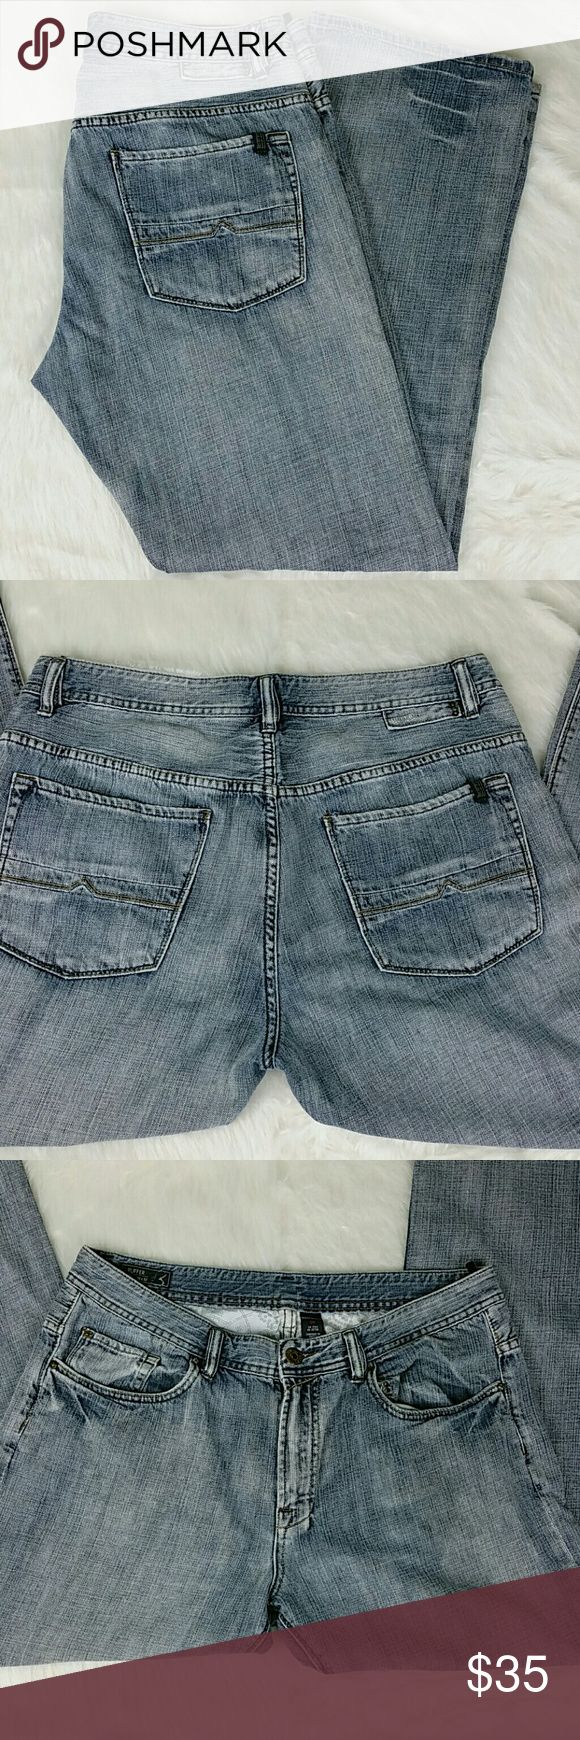 [Buffalo] Men's 36x32 David Bitton Ruffer Straight [Buffalo] Men's David Bitton Ruffer Straight Jeans Condition: Pre-owned in excellent condtion Size: 36W X 32L Measurements: See photo #7 for details Material: 100% Cotton Buffalo Jeans Straight